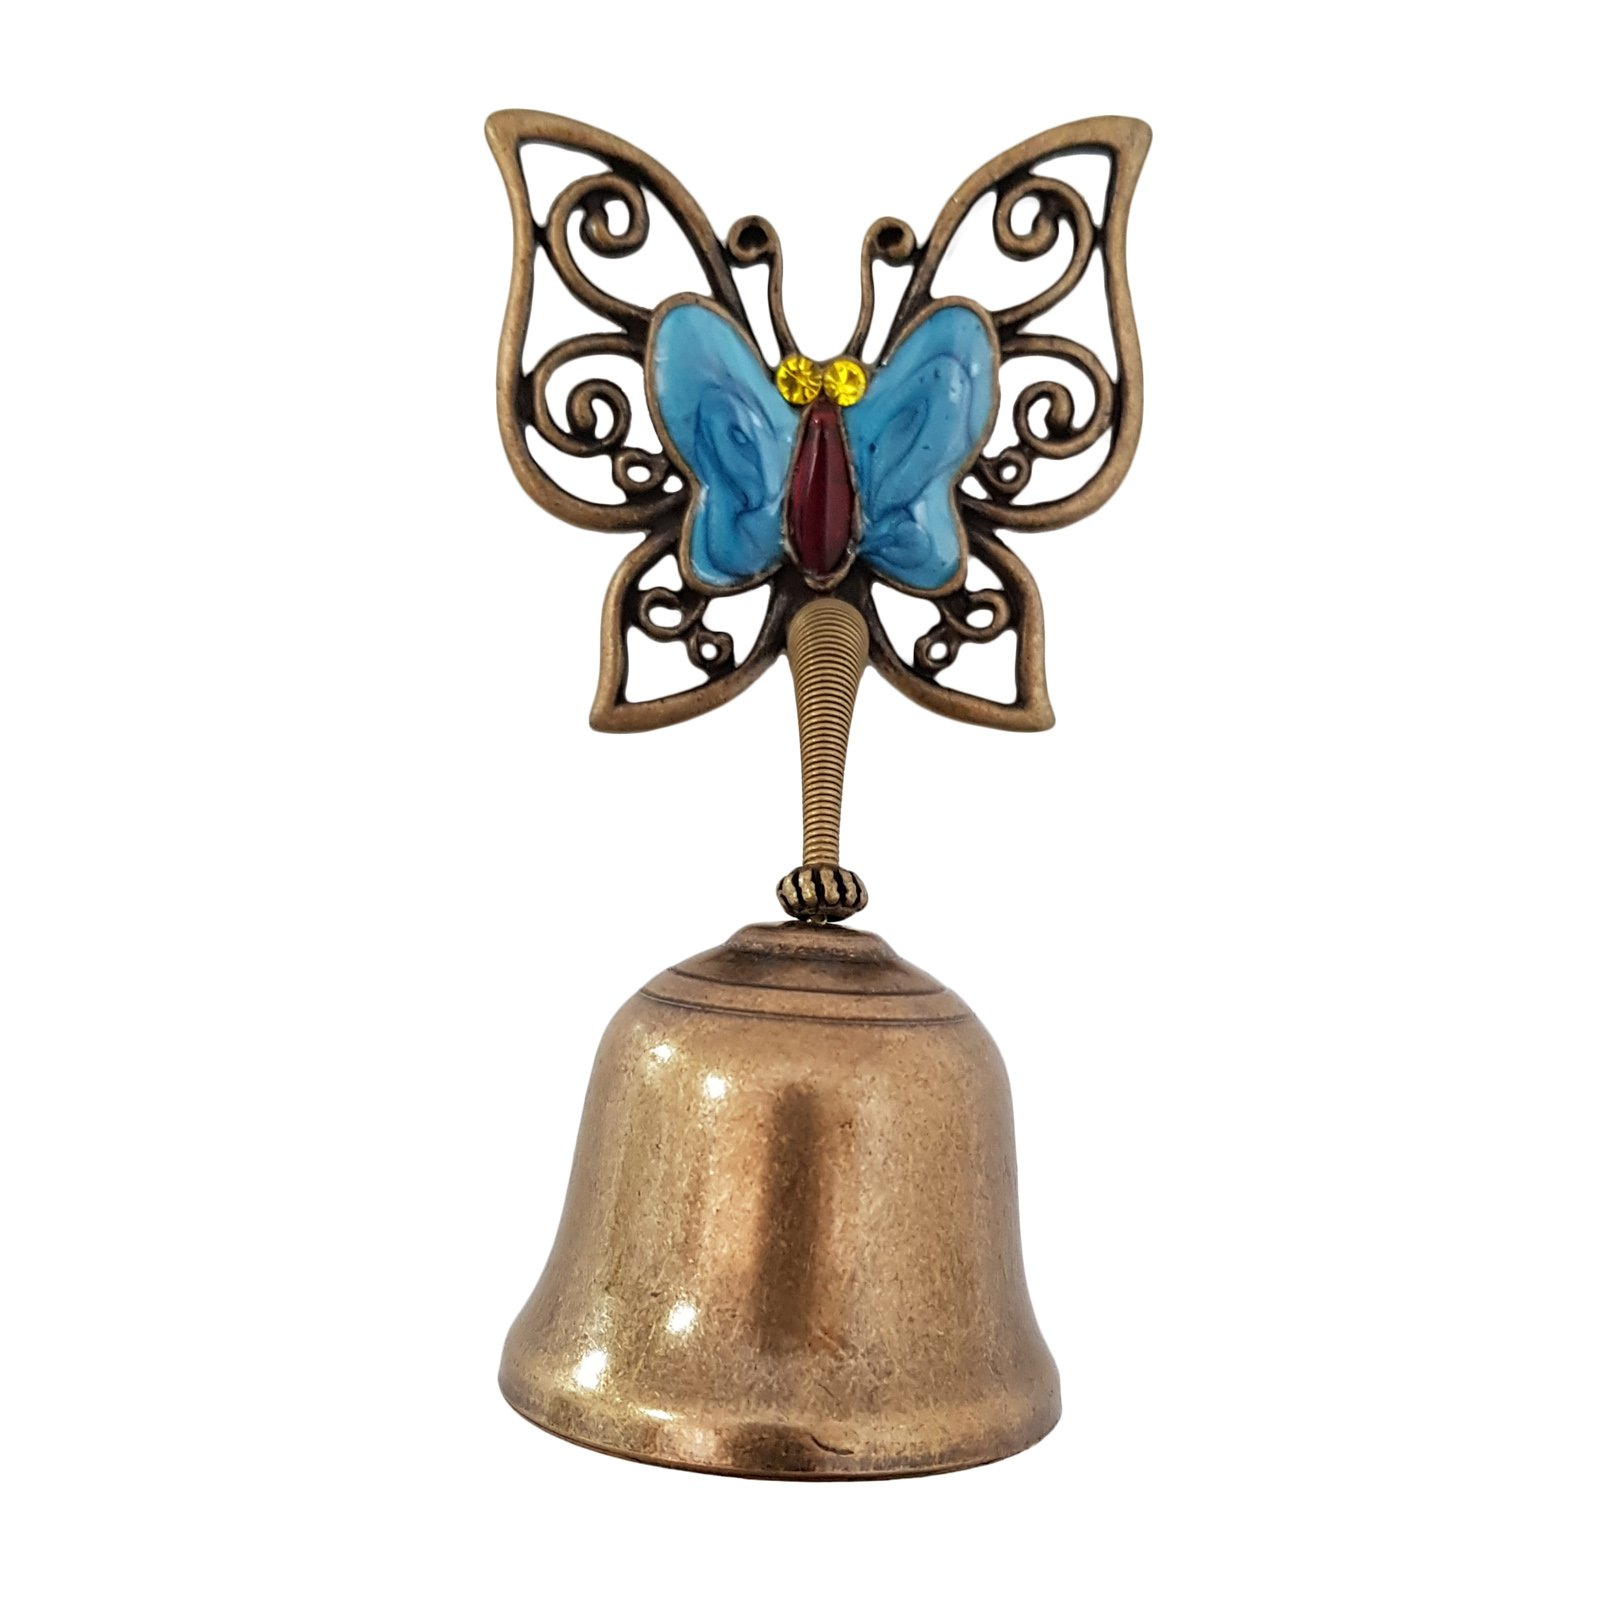 Vintage Butterfly Springy Shopkeepers Door Bell Store Entry Door Chime Compact & Lightweight Unique Design Home Decoration (Blue)